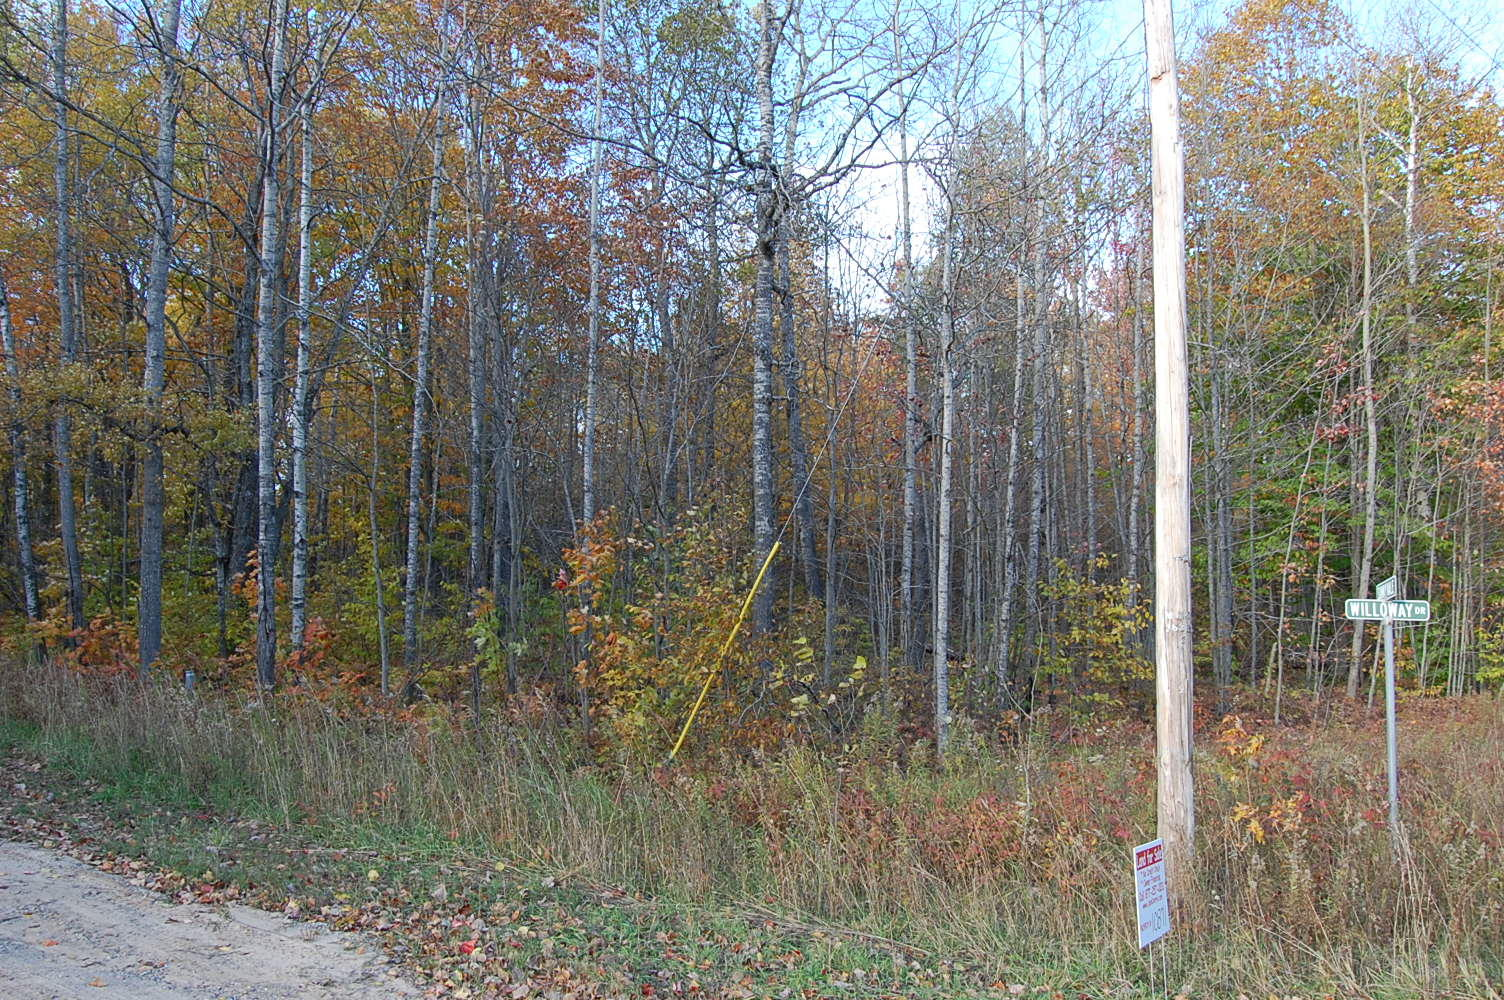 More than Half Acre in Picturesque Michigan - Image 0